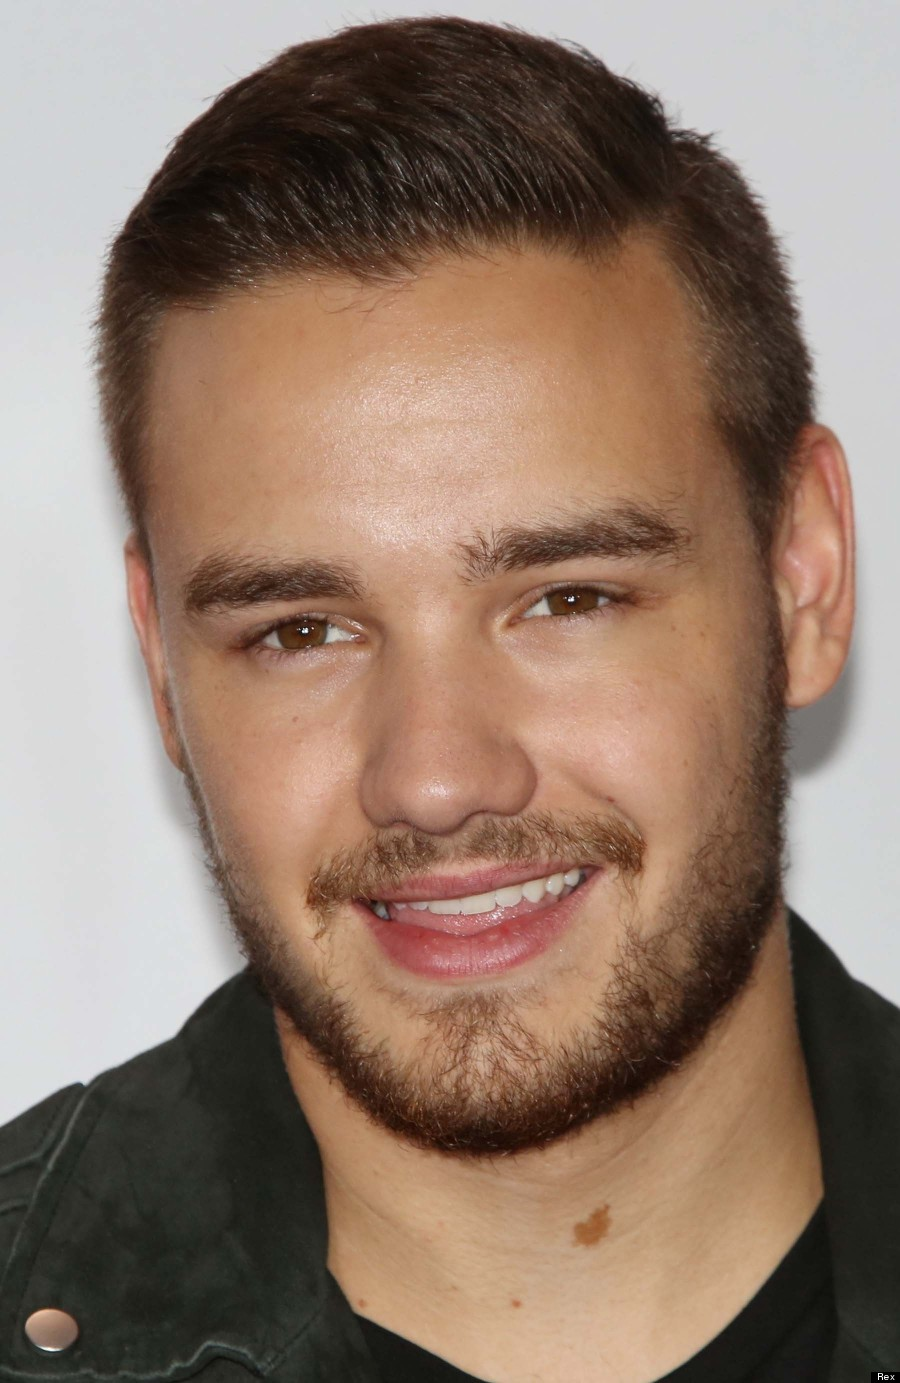 who is liam in one direction dating Zain javadd zayn malik (born january 12, 1993), also known mononymously as zayn, is a former member of british-irish band one direction he left the band on march 25, 2015, to pursue a solo music career his debut solo album, mind of mine, was released on march 25, 2016.